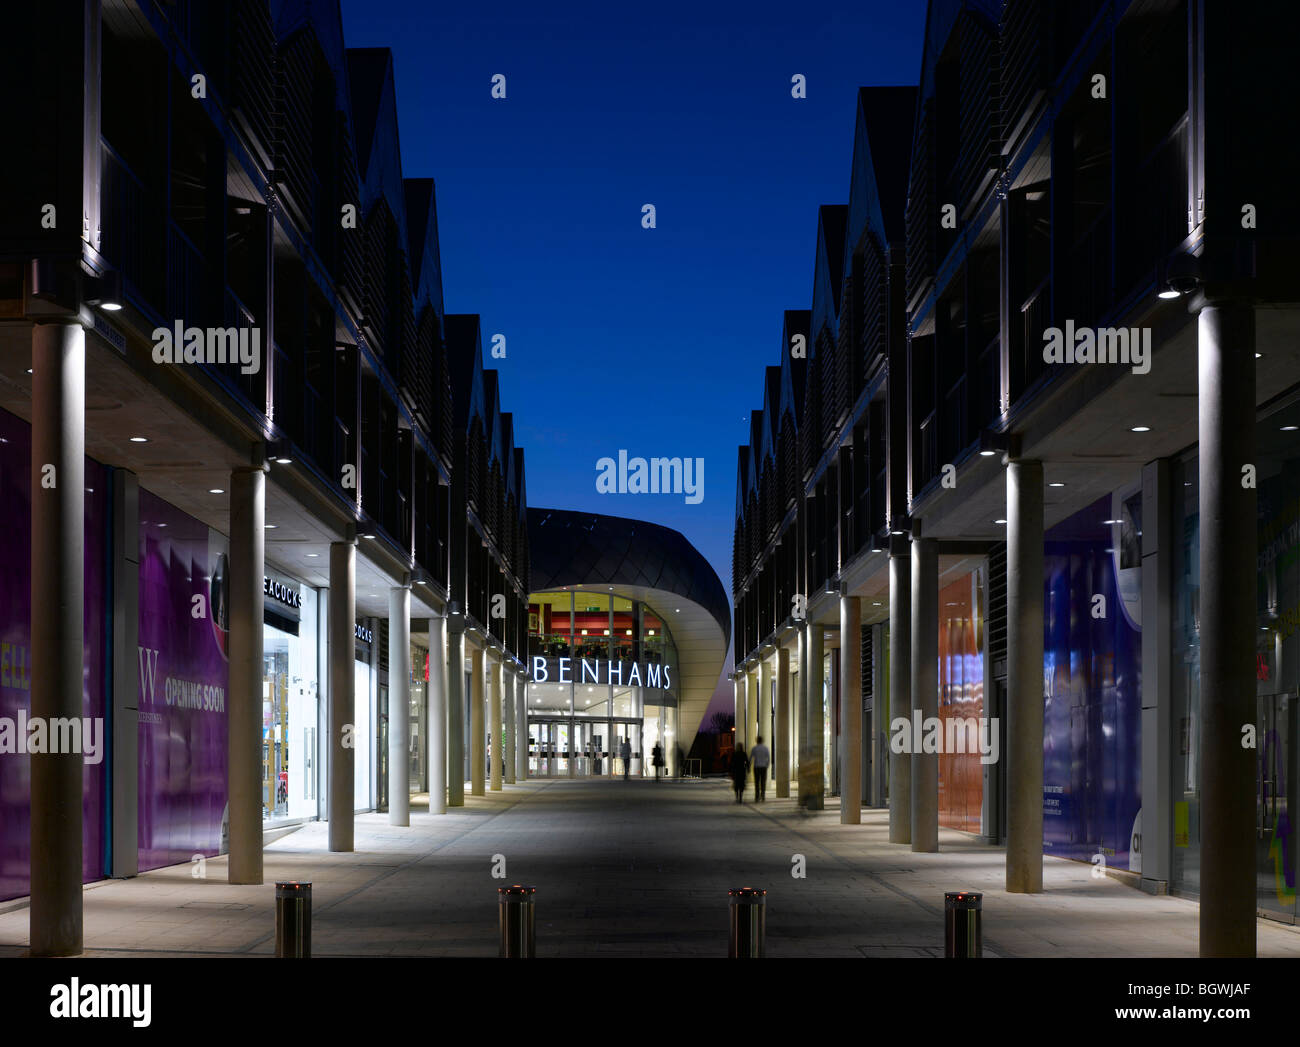 Bury Saint Edmunds United Kingdom  city pictures gallery : ... CENTRE, BURY ST EDMUNDS, UNITED KINGDOM, VERETEC WITH MICHAEL HOPKINS